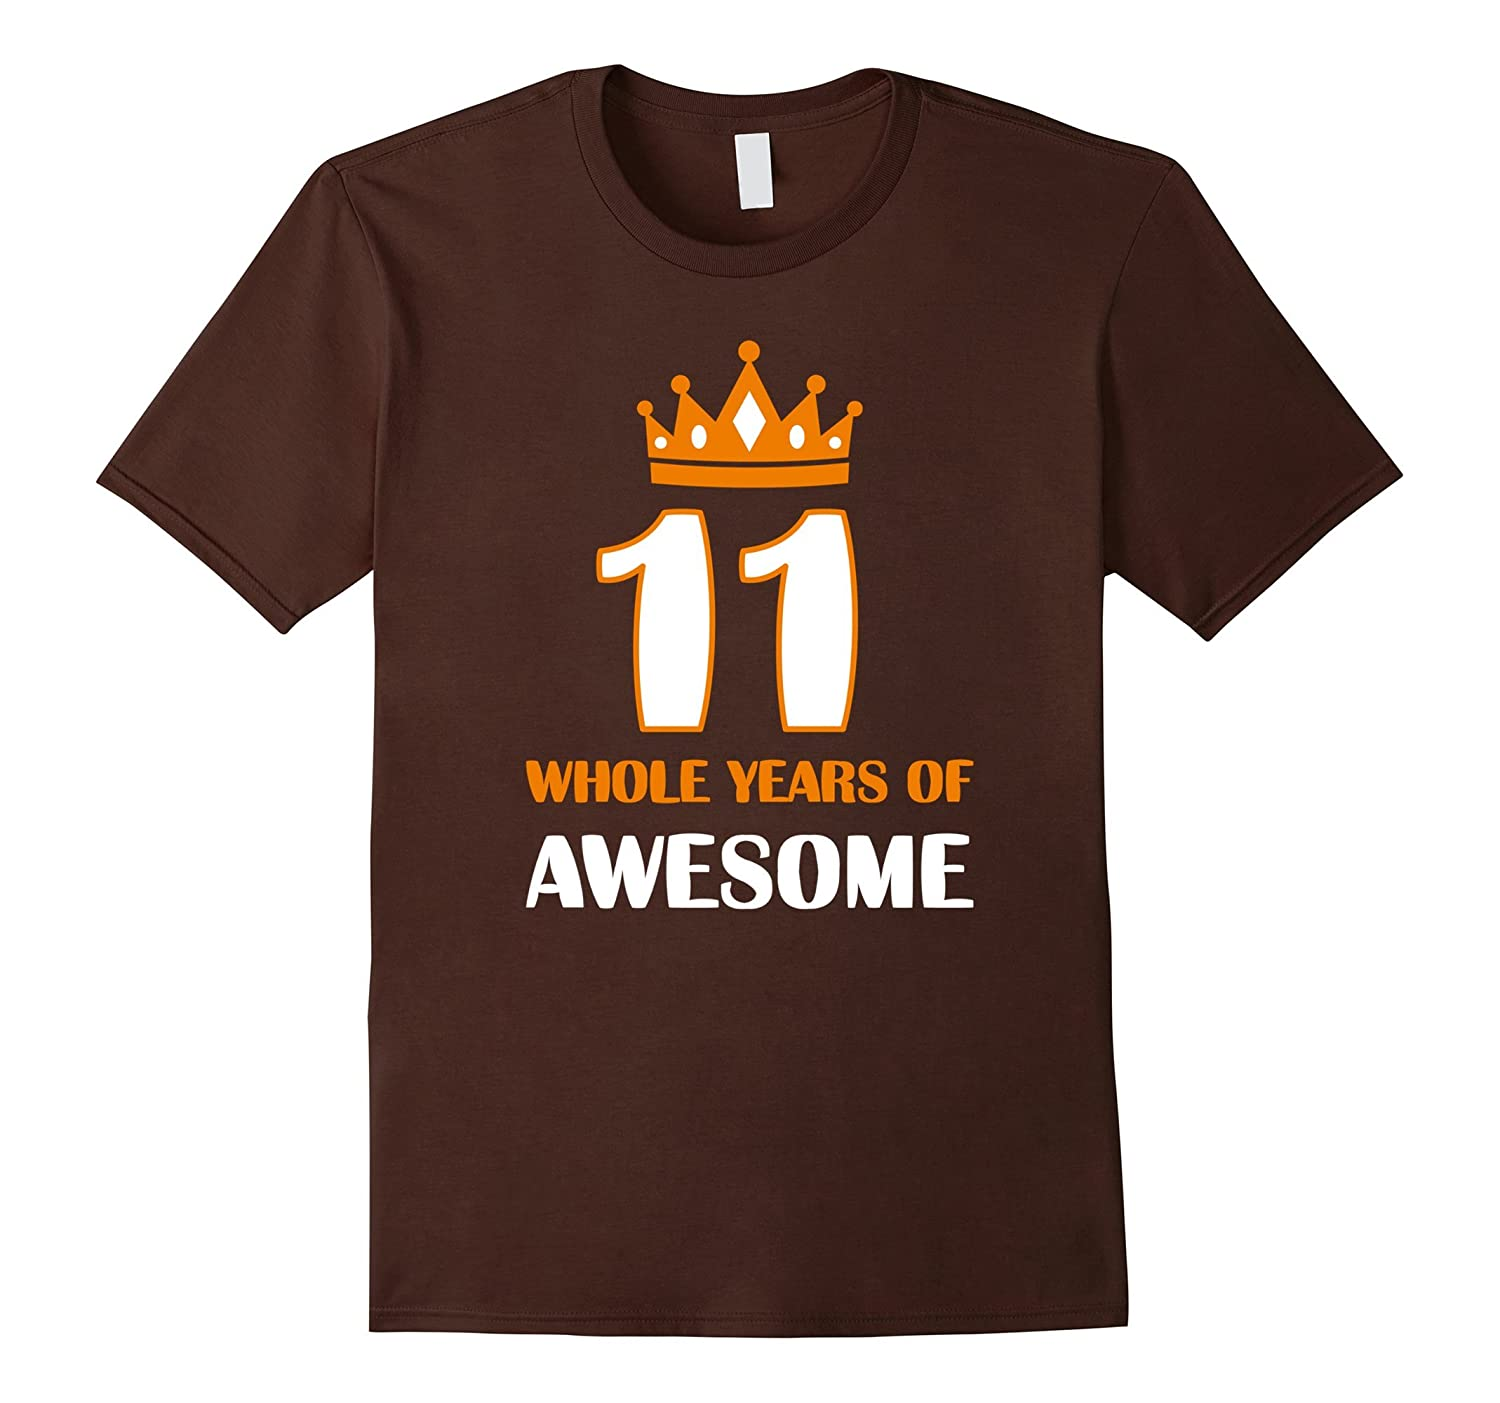 11 Whole Years of Awesome Tee 11th Birthday Gift TShirt Kids-CD